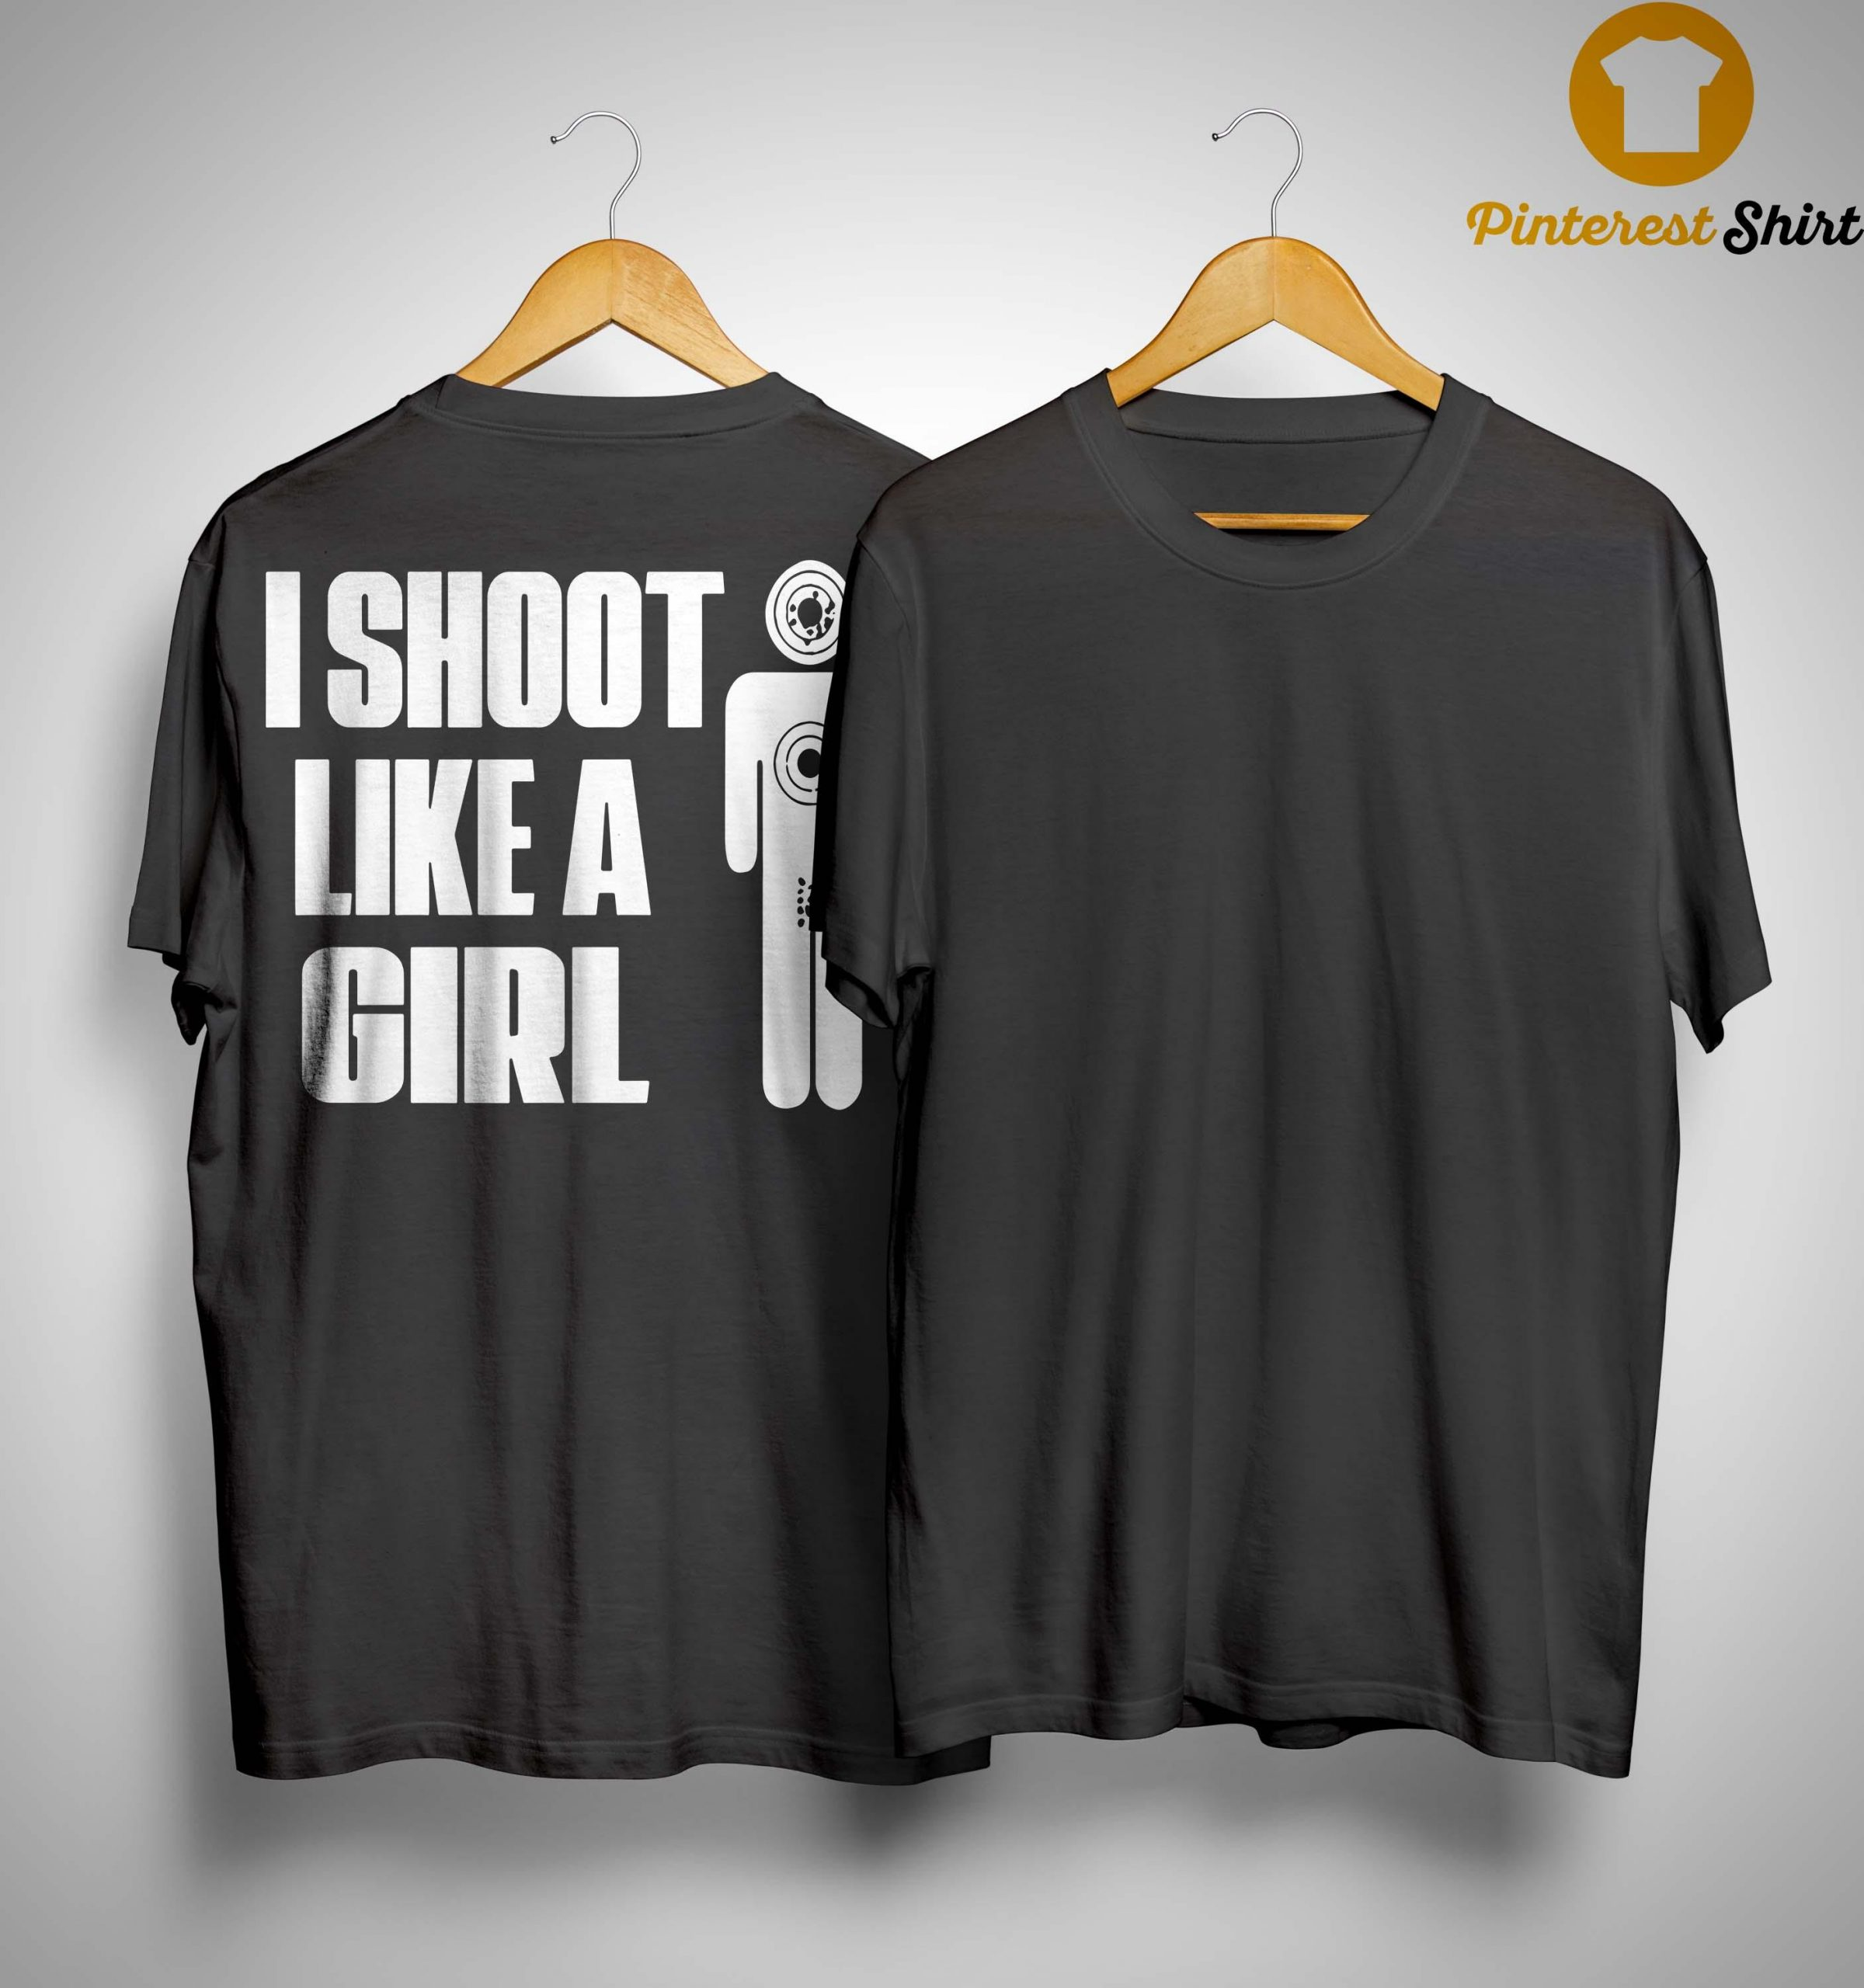 I Shoot Like A Girl Shirt